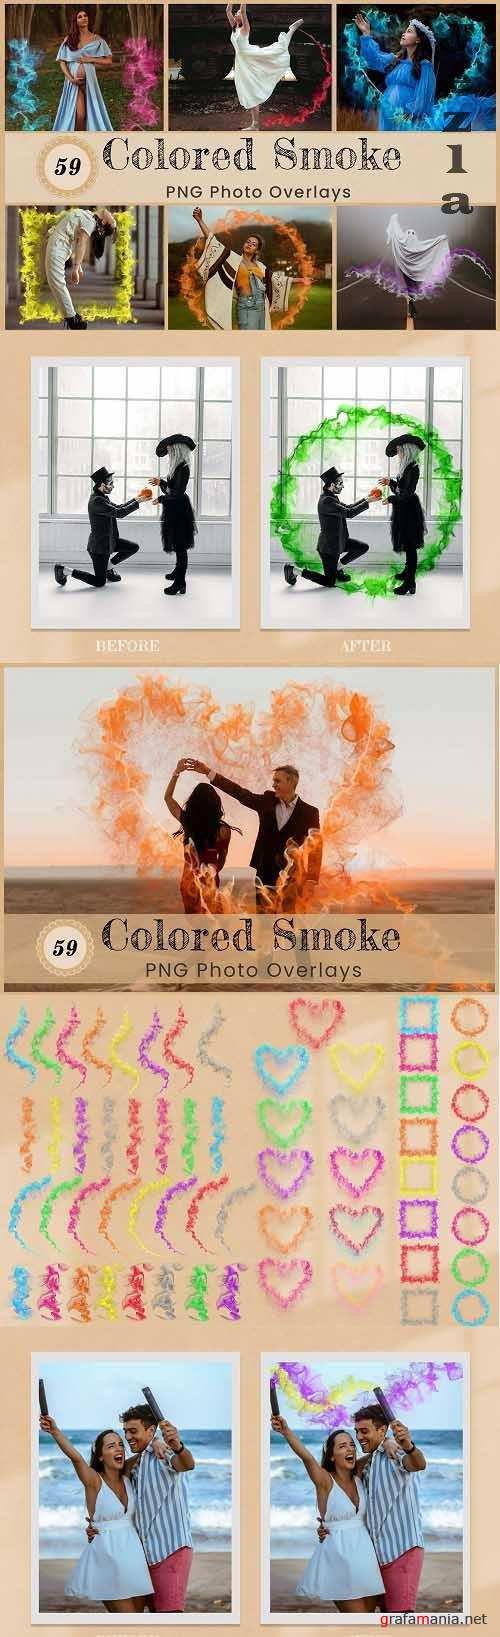 Colored Smoke PNG Overlays Backdrops - 6589313